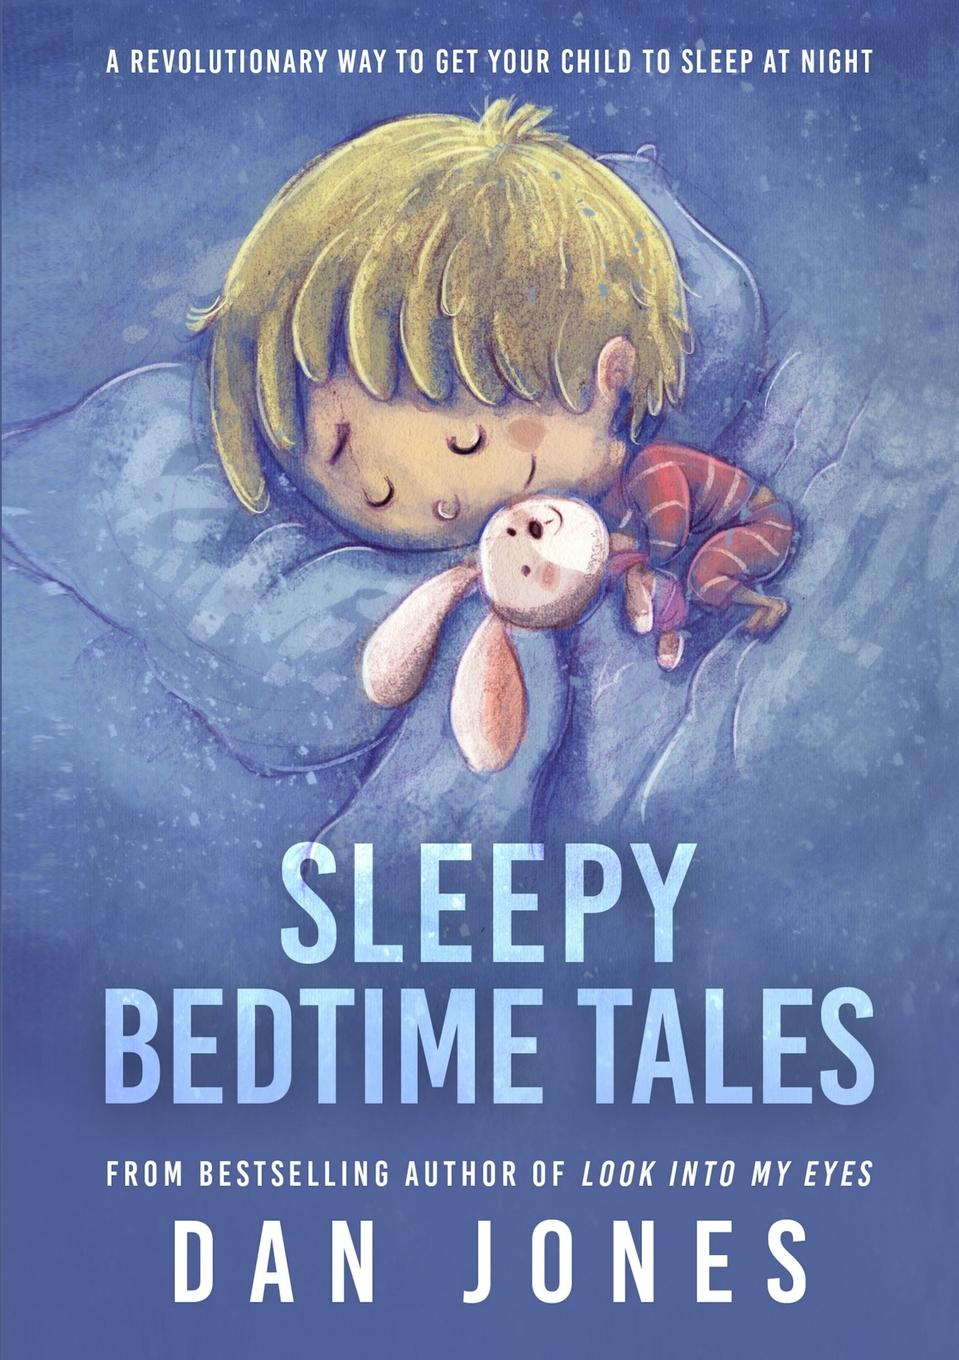 Dan Jones Sleepy Bedtime Tales. A Revolutionary Way to Get Your Child to Sleep At Night martha sears the baby sleep book how to help your baby to sleep and have a restful night